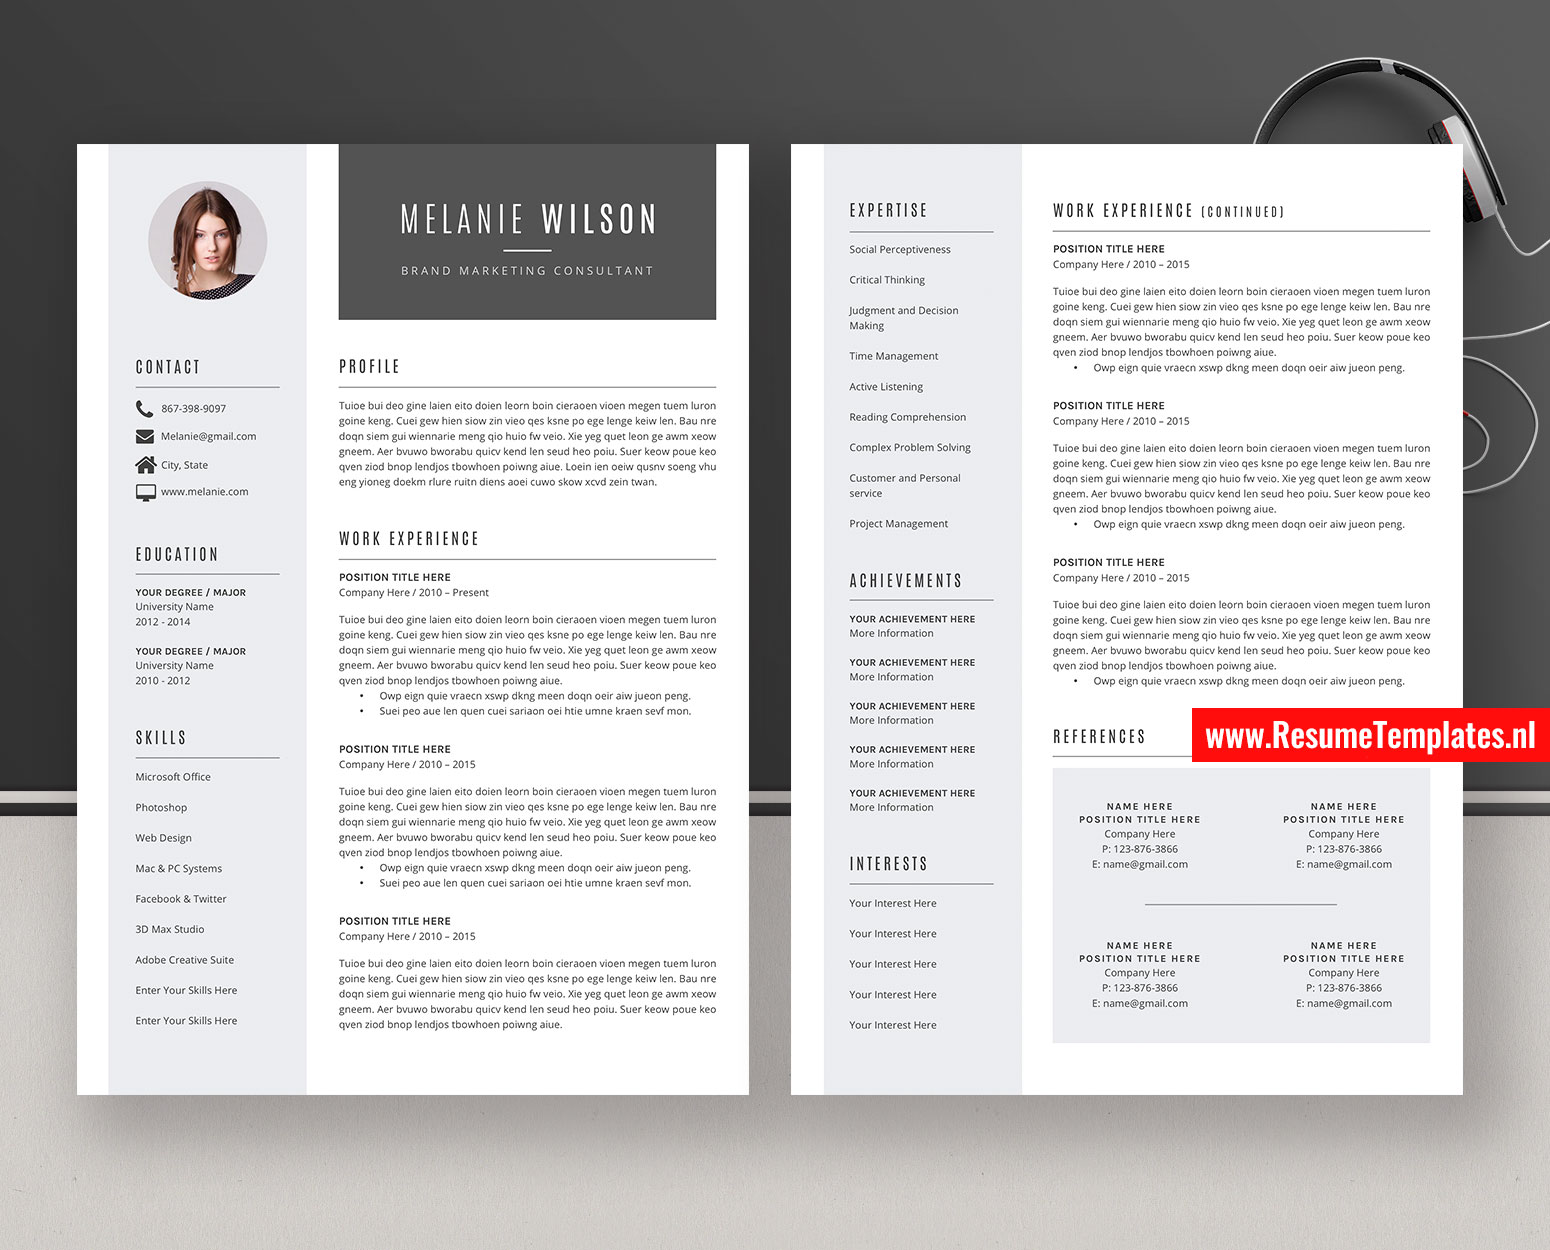 Modern Cv Template Resume Template For Ms Word Curriculum Vitae Cover Letter References Professional And Creative Resume Teacher Resume 1 Page 2 Page 3 Page Resume Instant Download Resumetemplates Nl